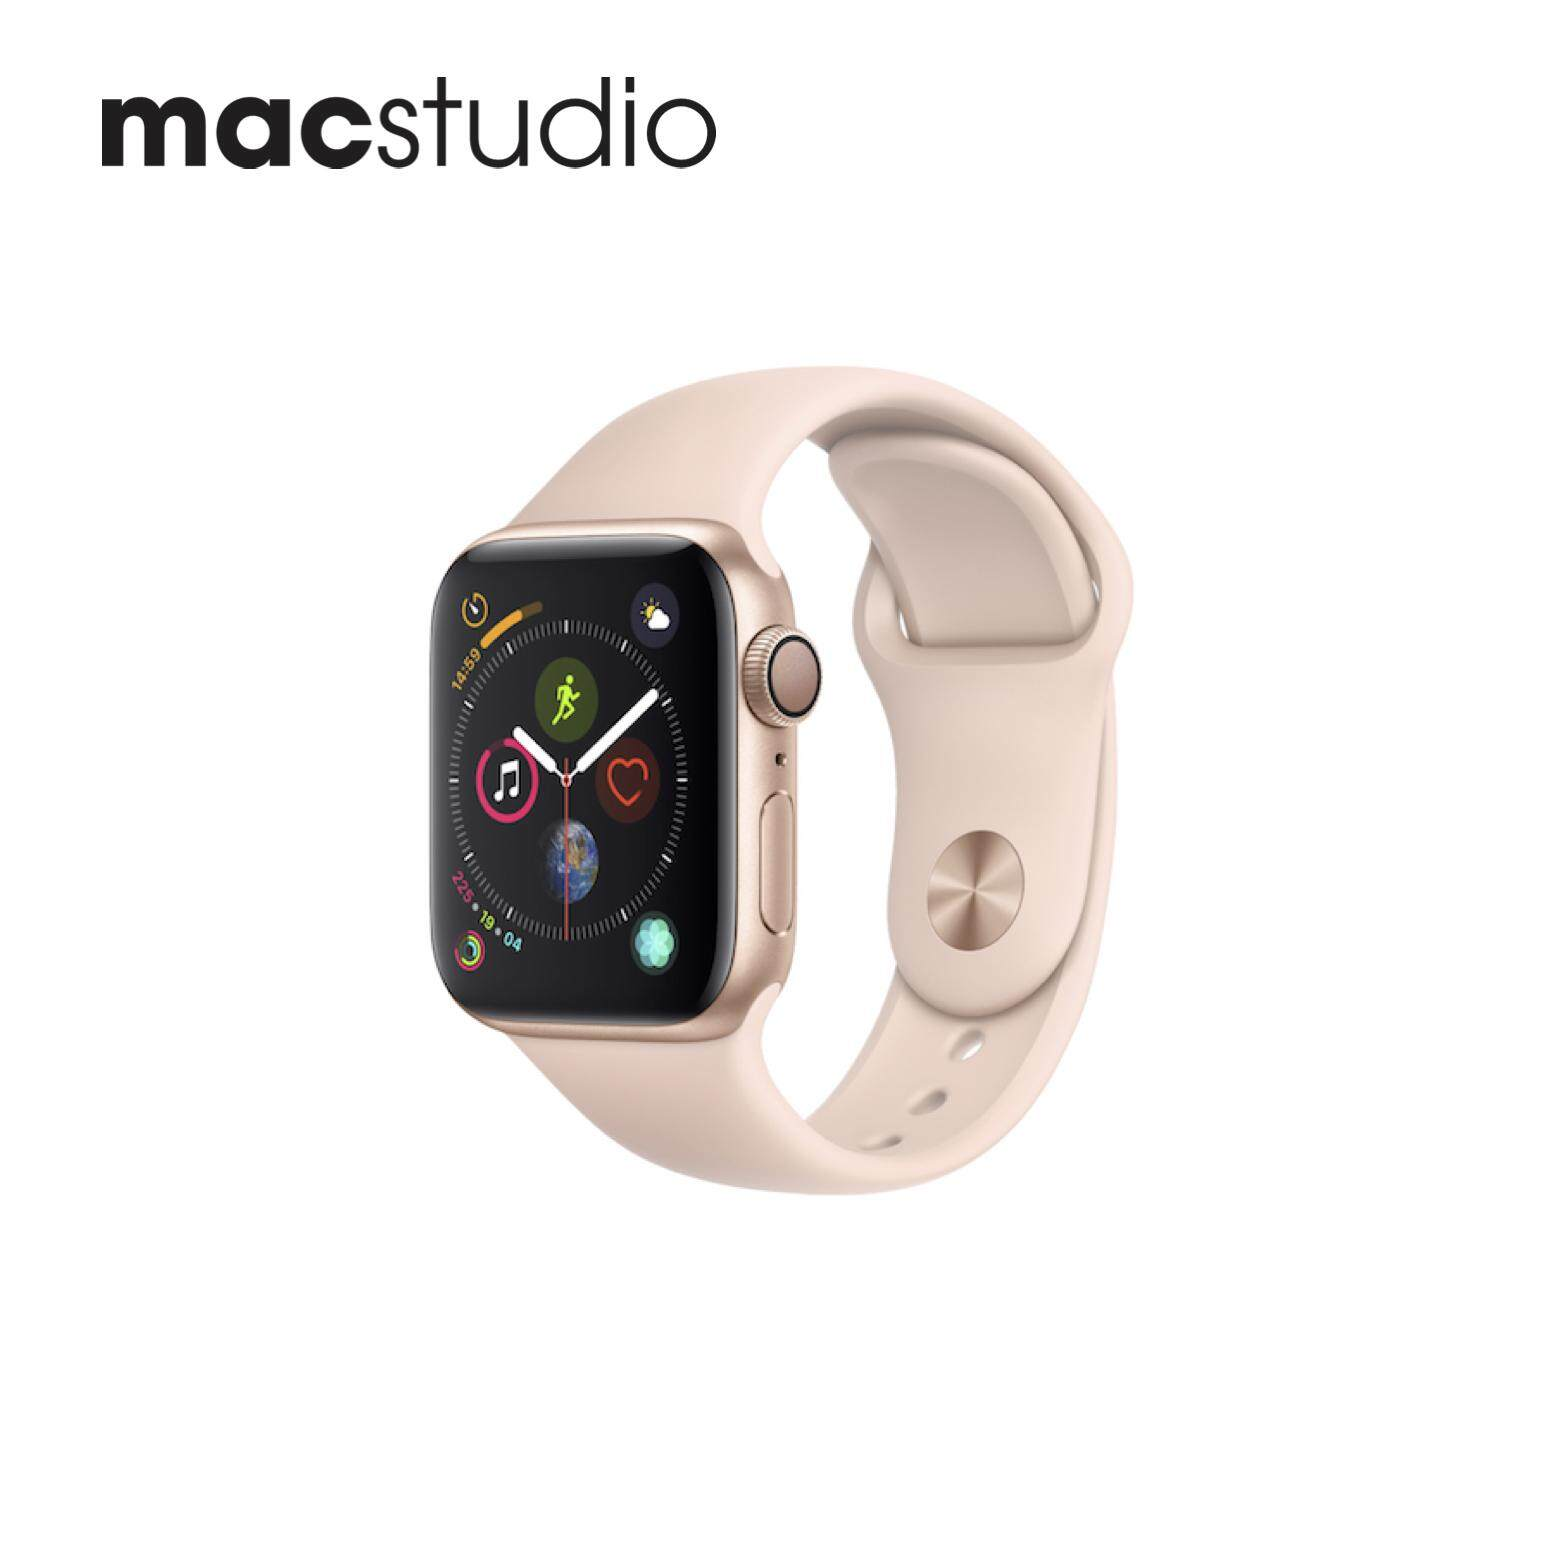 Buy Apple Products At The Best Price In Malaysia Lazada Ipad Pro 129 32gb Grey Wifi Only Watch Series 4 40mm Gold Aluminium Case With Pink Sand Sport Band